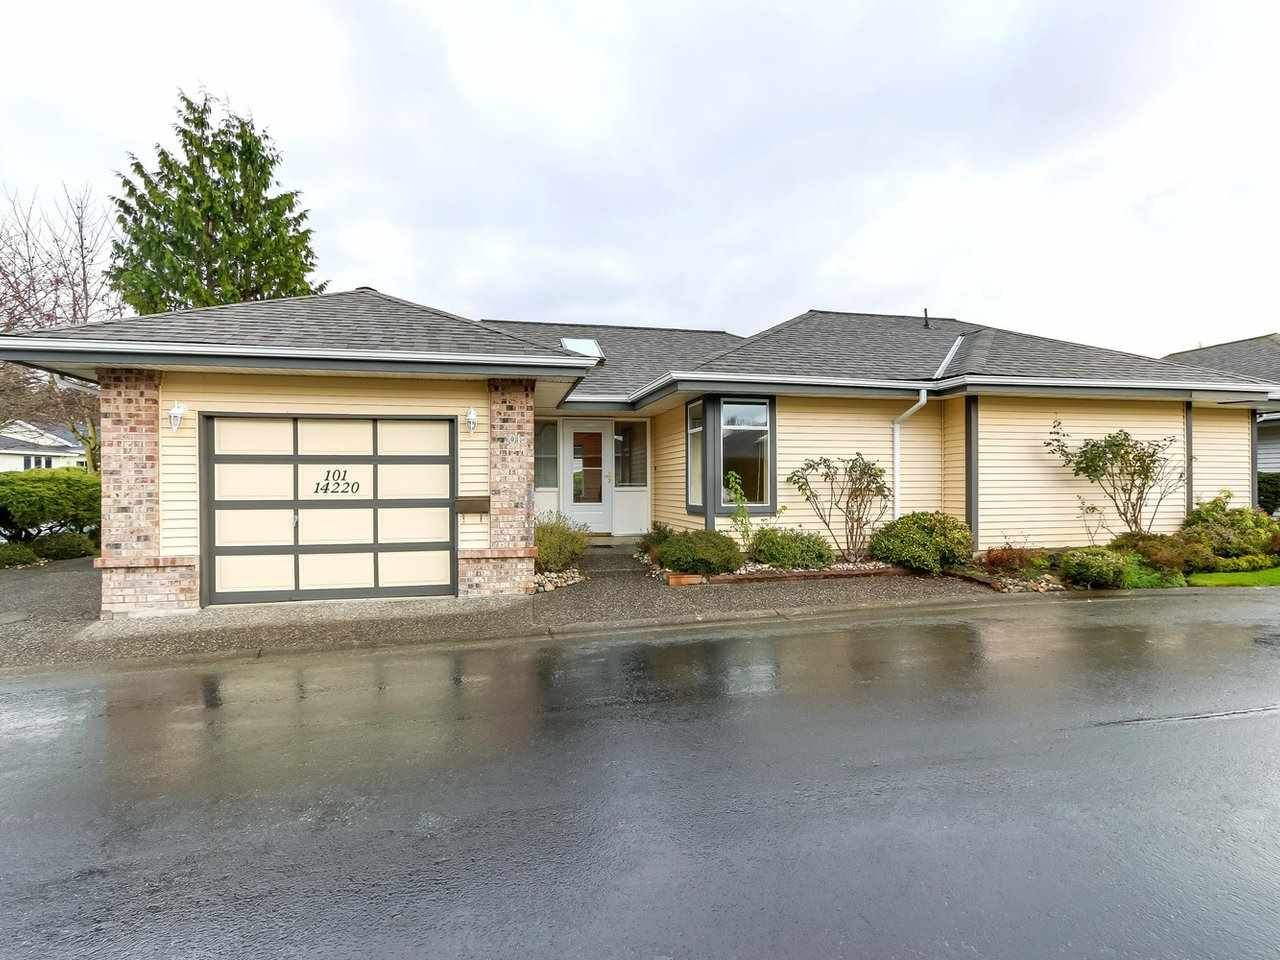 """Main Photo: 101 14220 19A Avenue in Surrey: Sunnyside Park Surrey Townhouse for sale in """"Ocean Bluff Court"""" (South Surrey White Rock)  : MLS®# R2326003"""